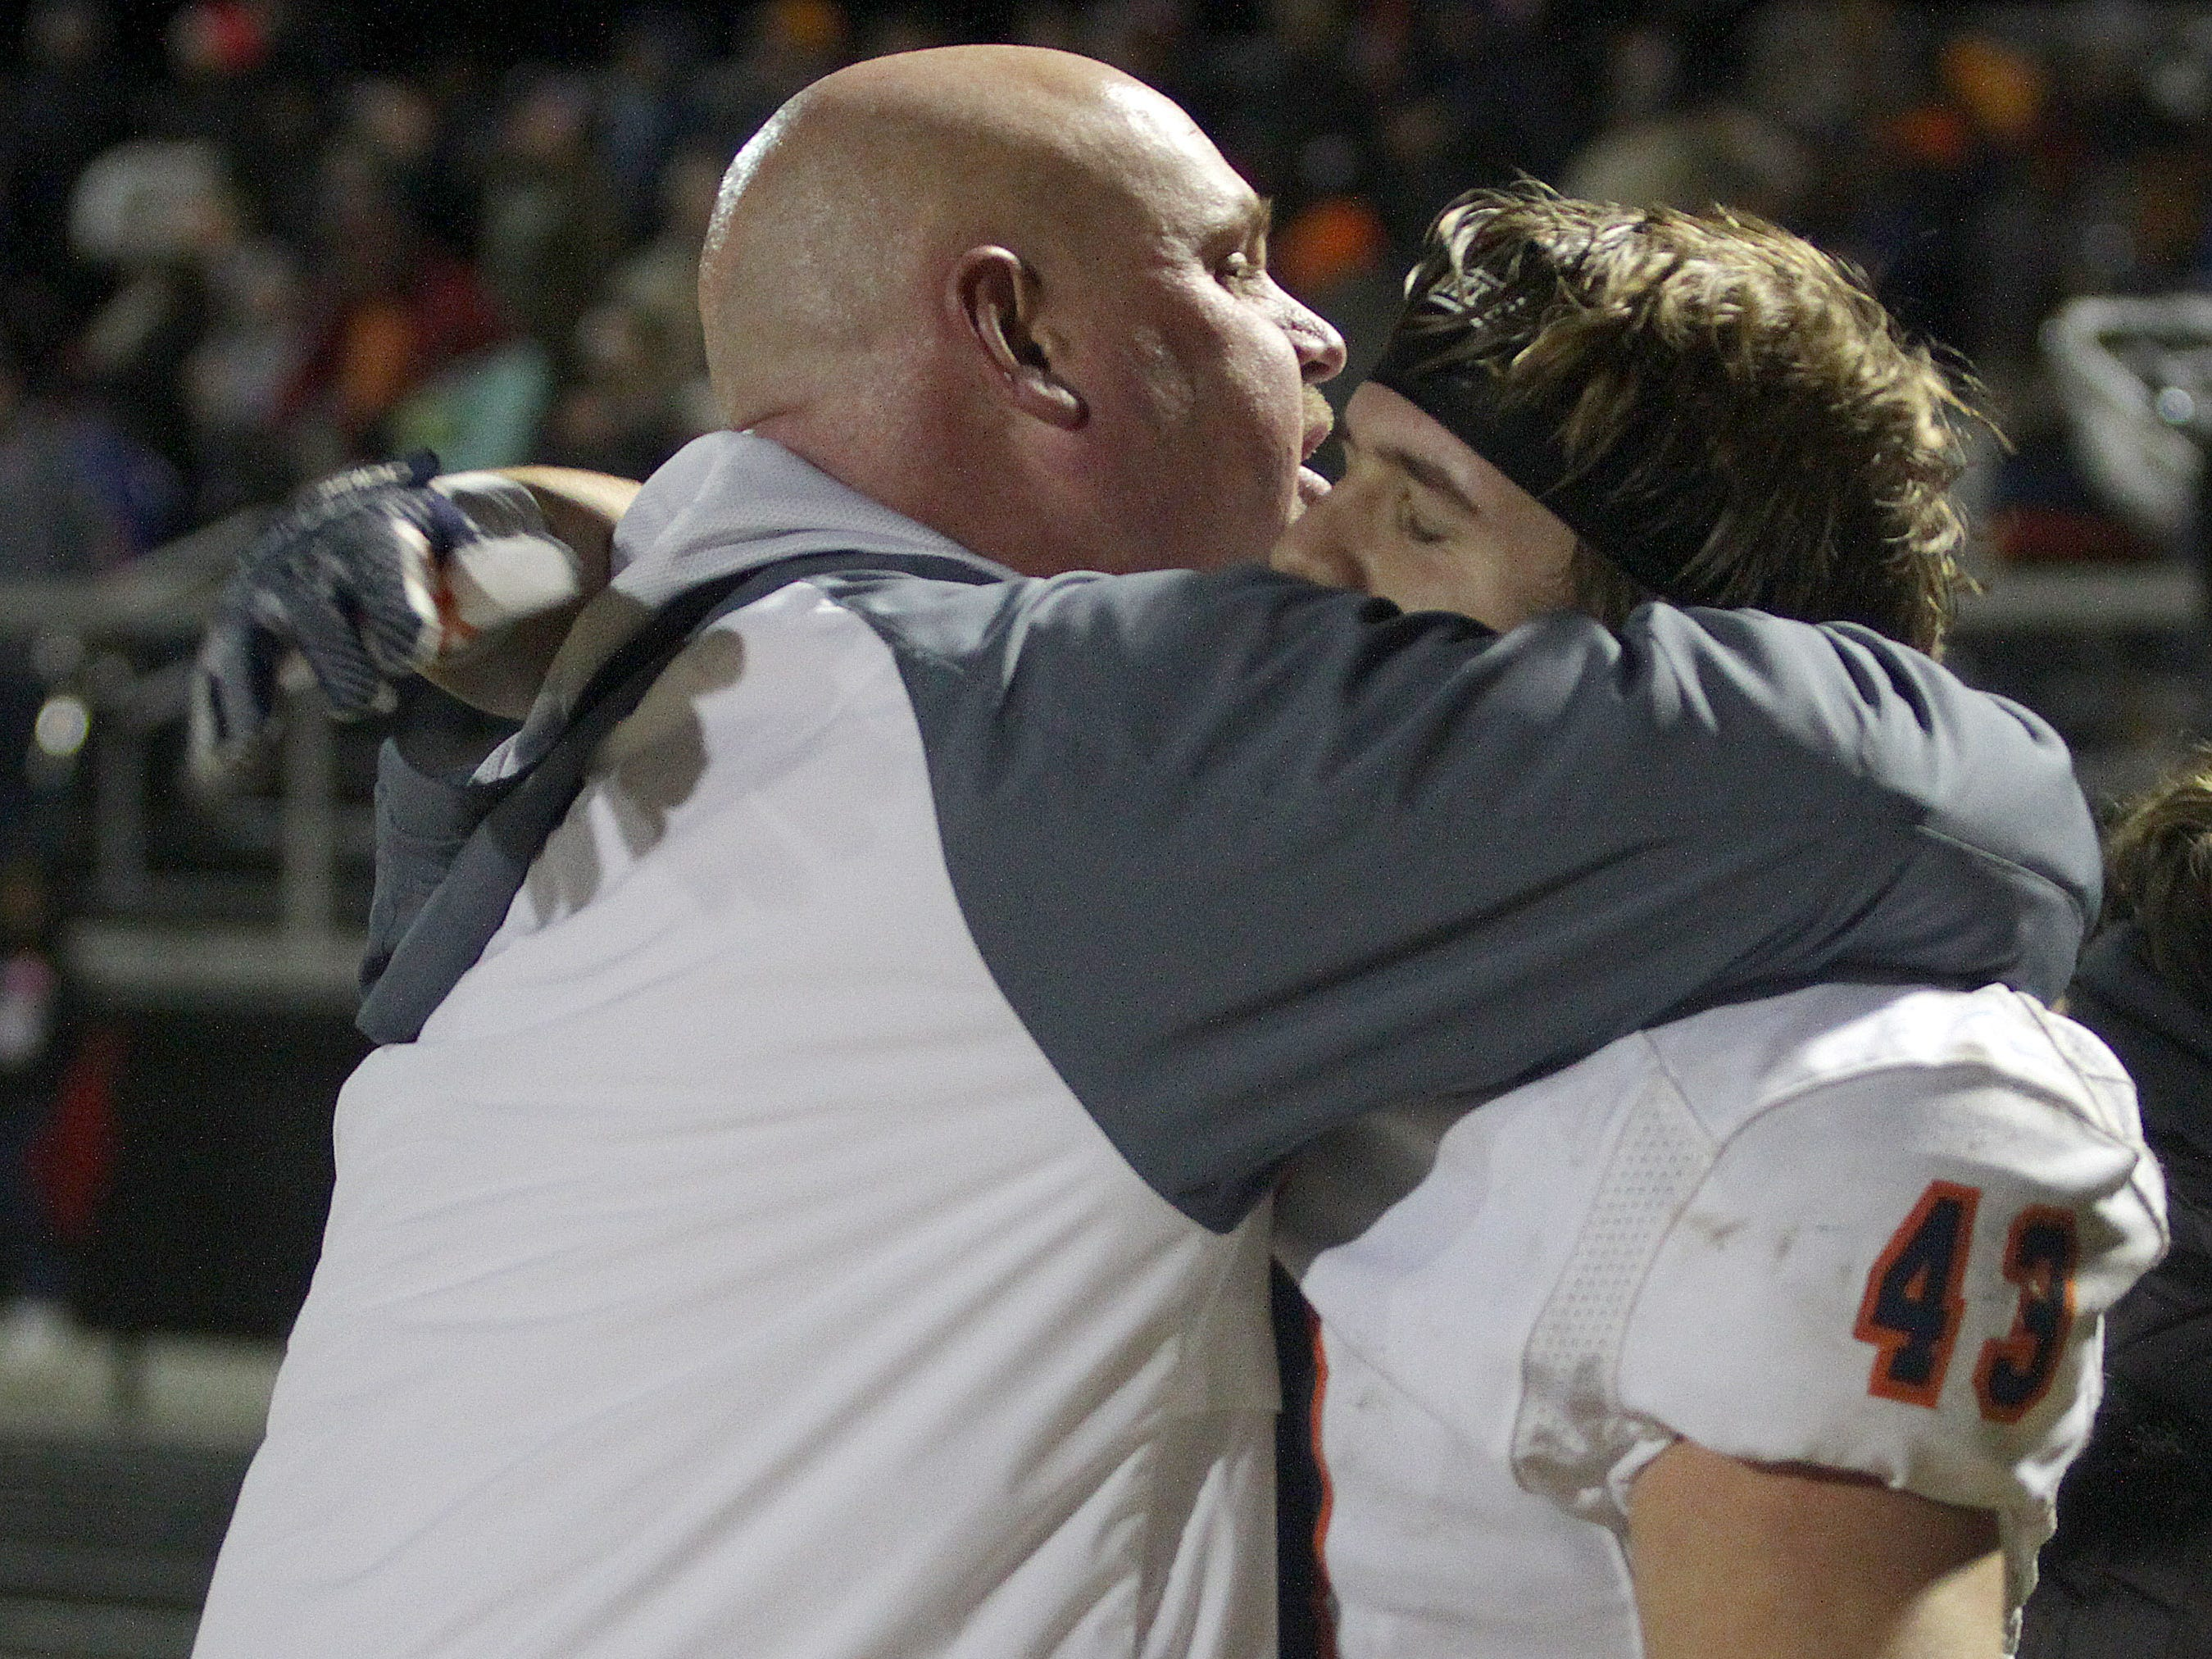 Beech Coach Anthony Crabtree gives Will Crabtree a hug after their win over Hillsboro on Friday, November 16, 2018.